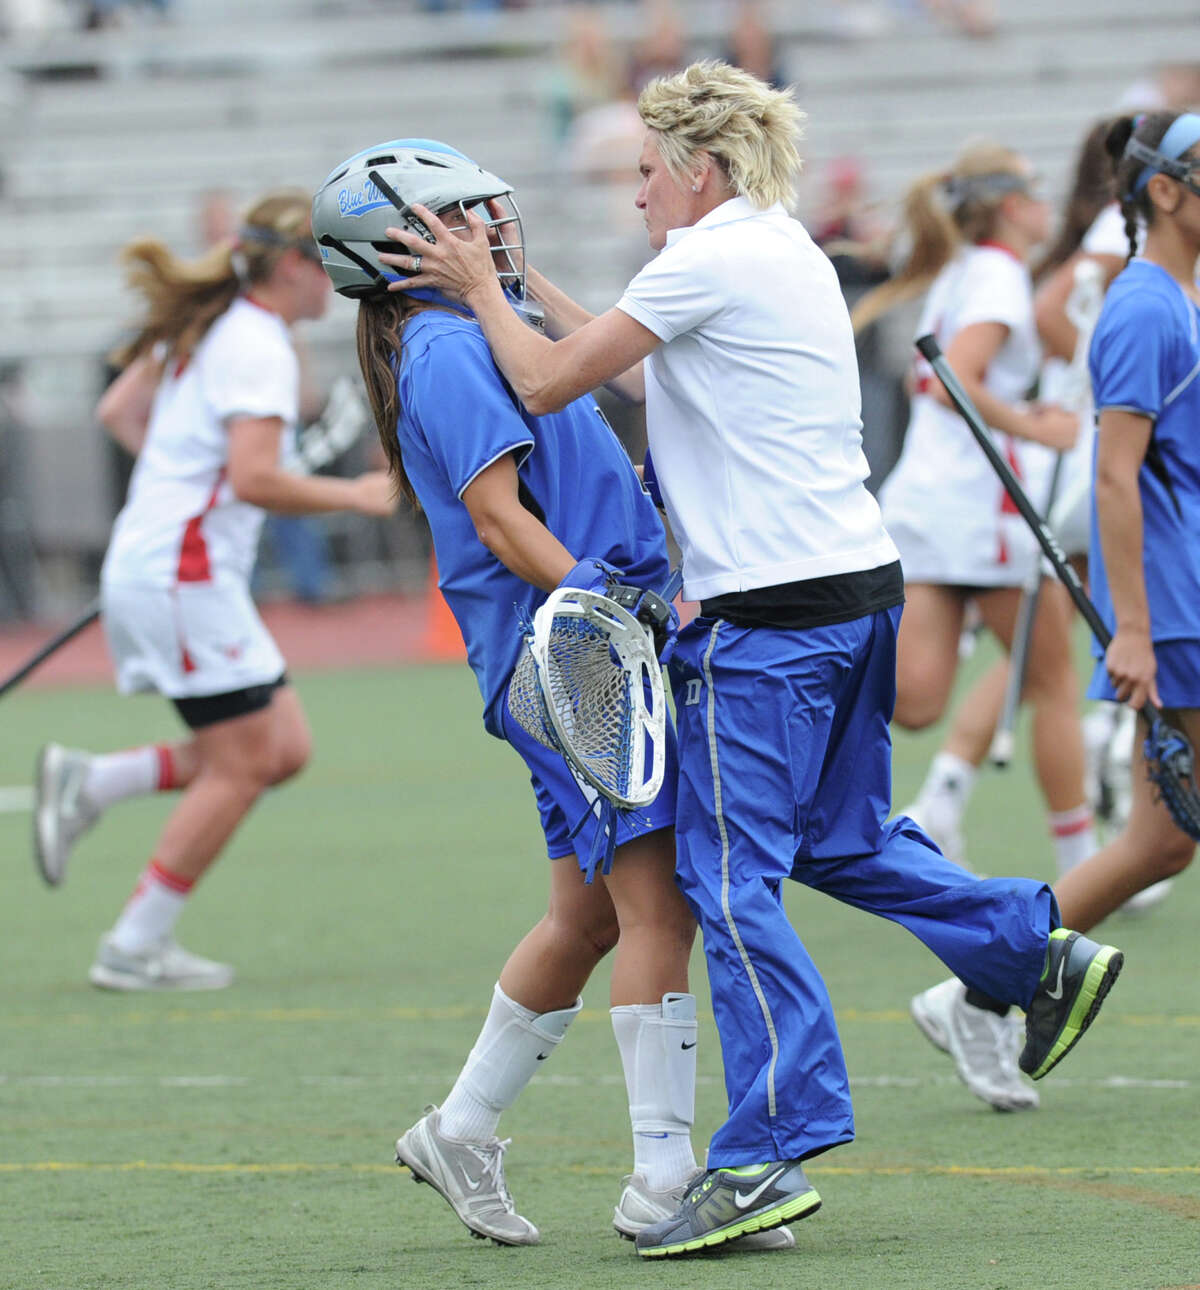 Darien High School girls lacrosse coach Lisa Lindley, right, grabs her goalie Caylee Waters during a timeout in the first half of the FCIAC girls lacrosse finals between Greenwich High School and Darien High School at Brien McMahon High School in Norwalk, Friday, May 25, 2012. Darien won the championship over Greenwich 17-14.